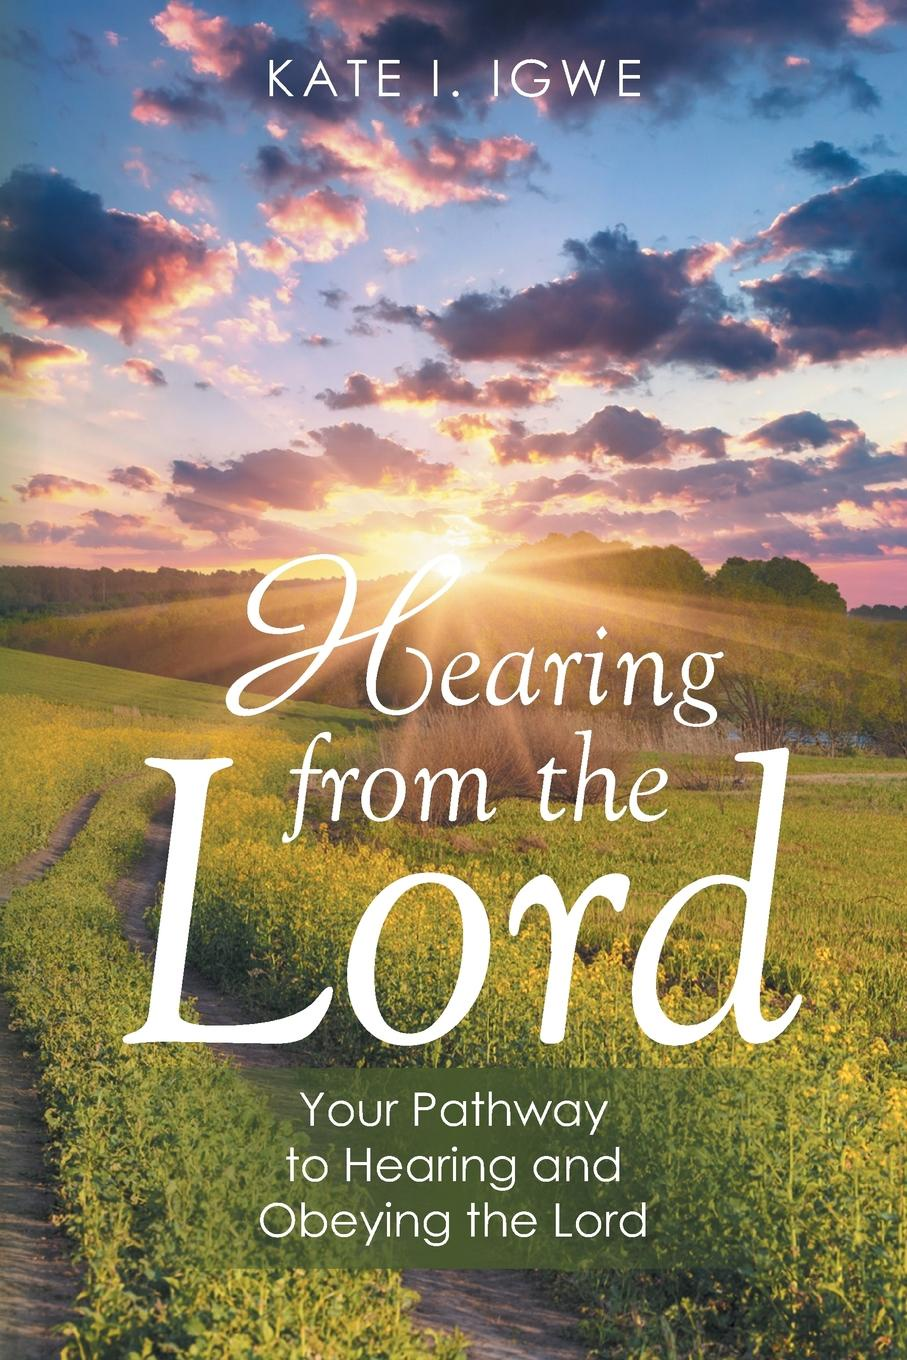 Kate I. Igwe Hearing from the Lord. Your Pathway to and Obeying Lord